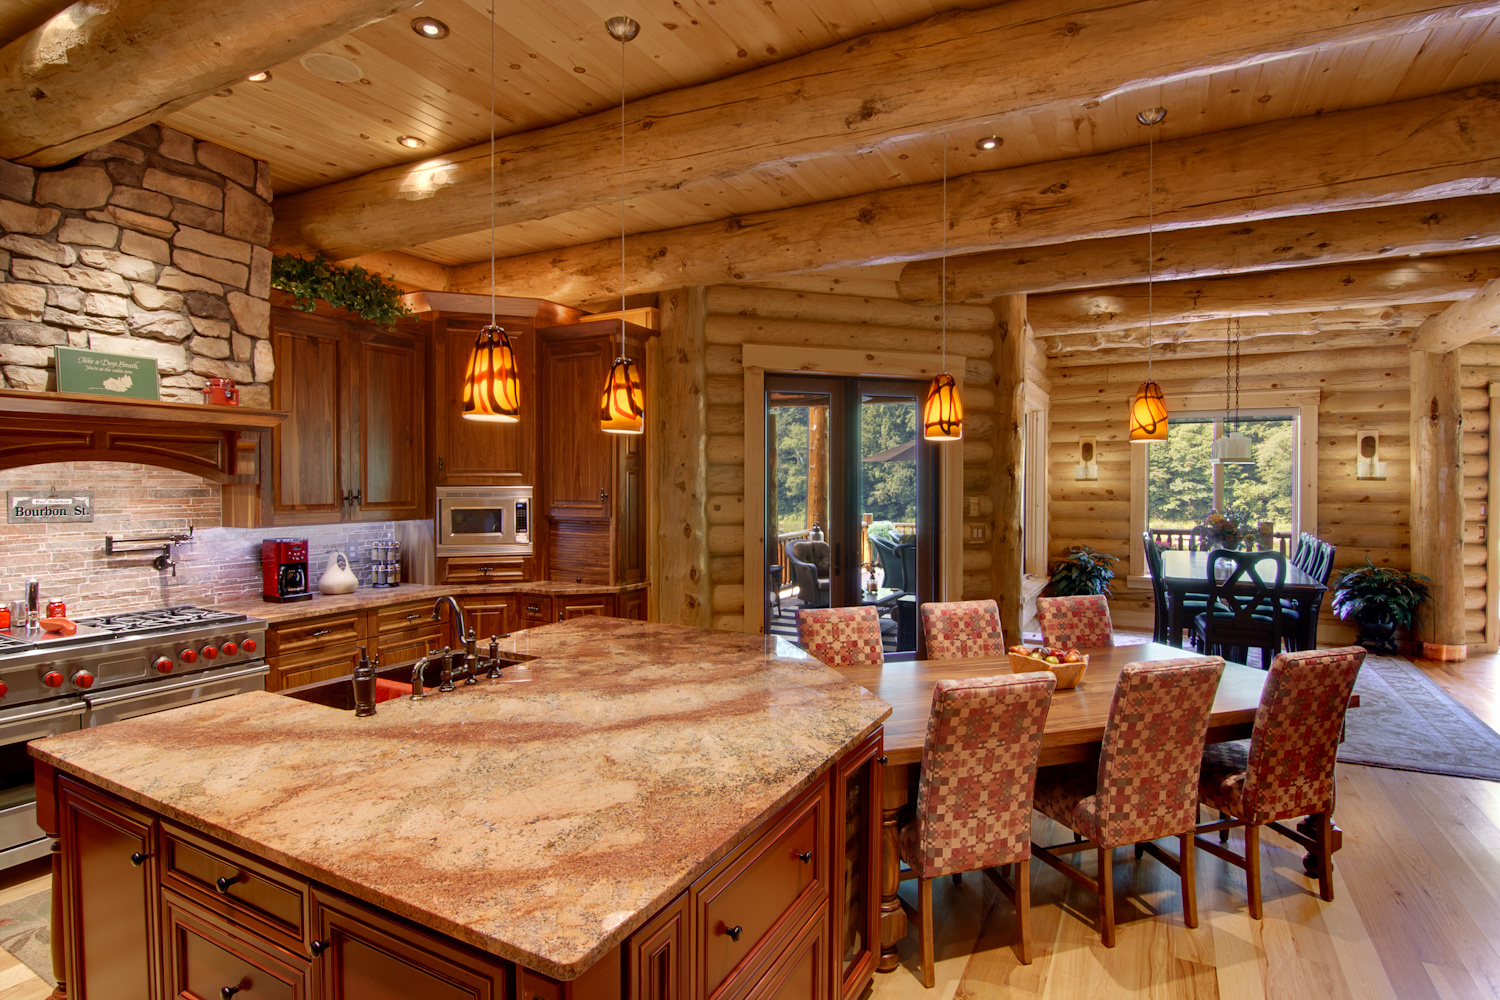 Barth Log Home Kitdin 1 Morningdale Log Homes Llc